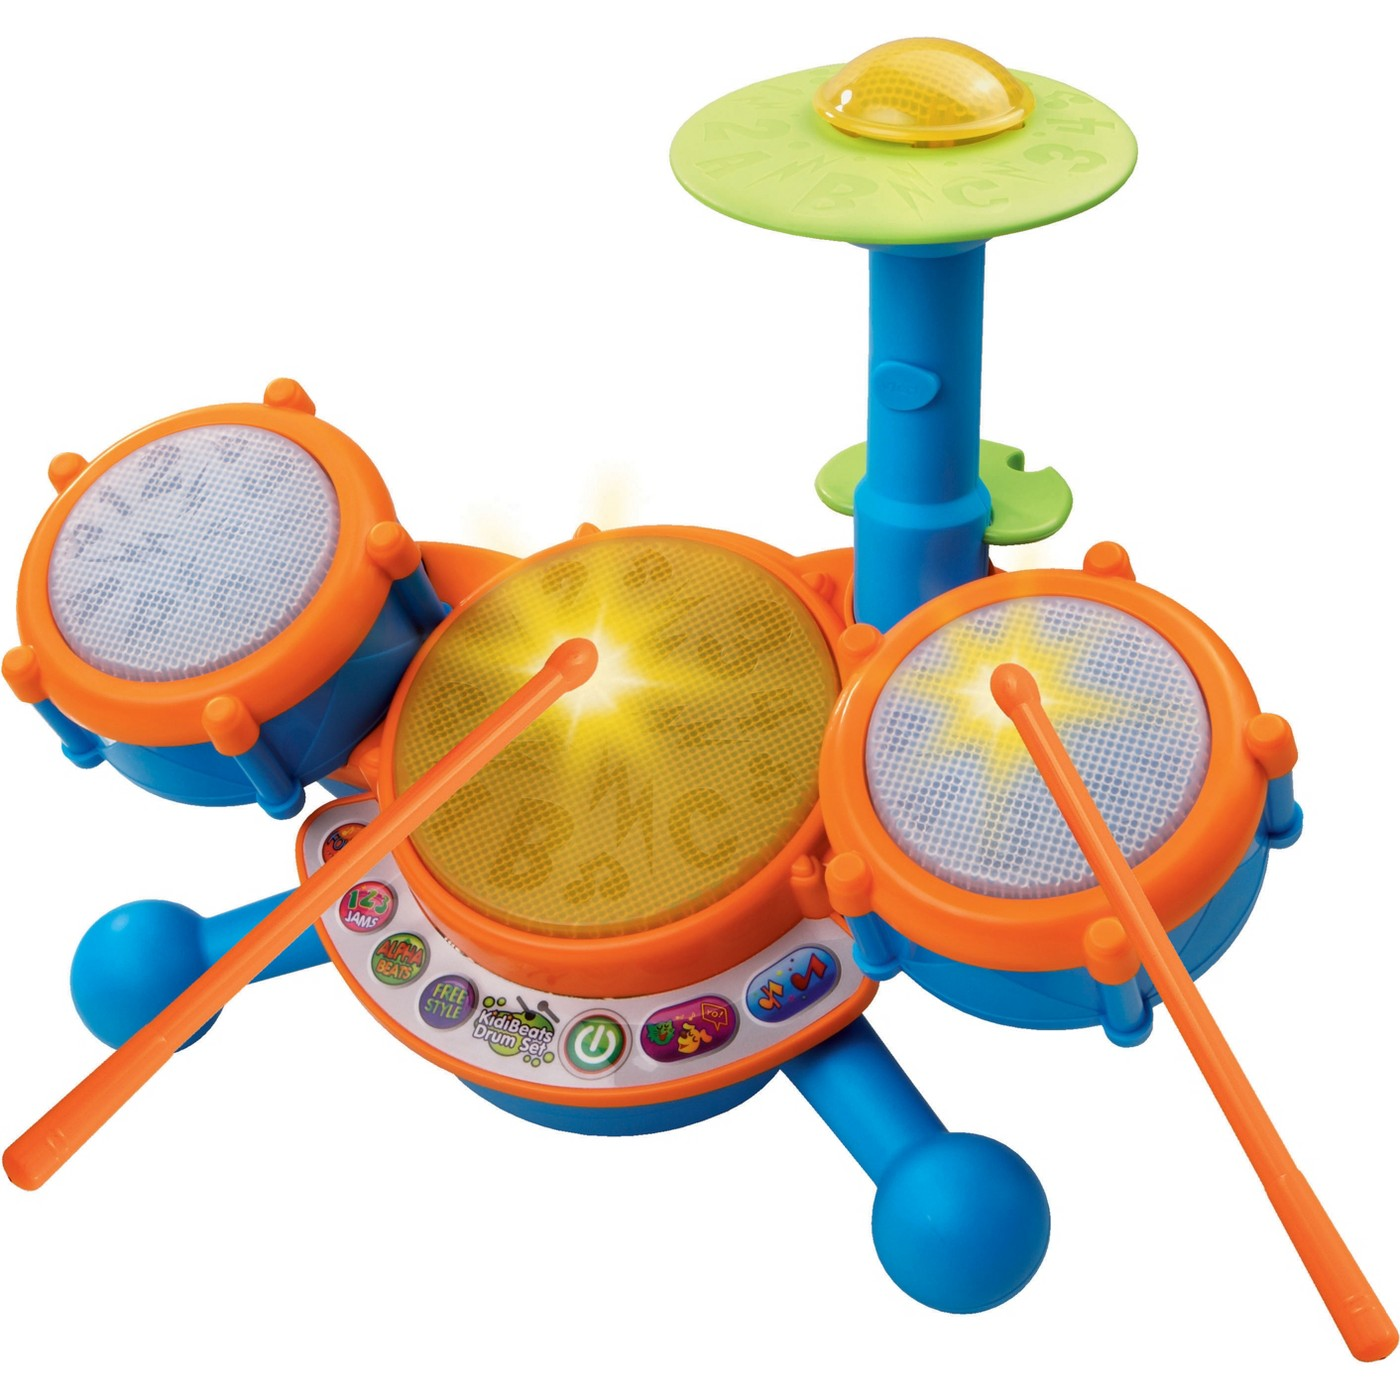 VTech KidiBeats Drum Set - image 1 of 6